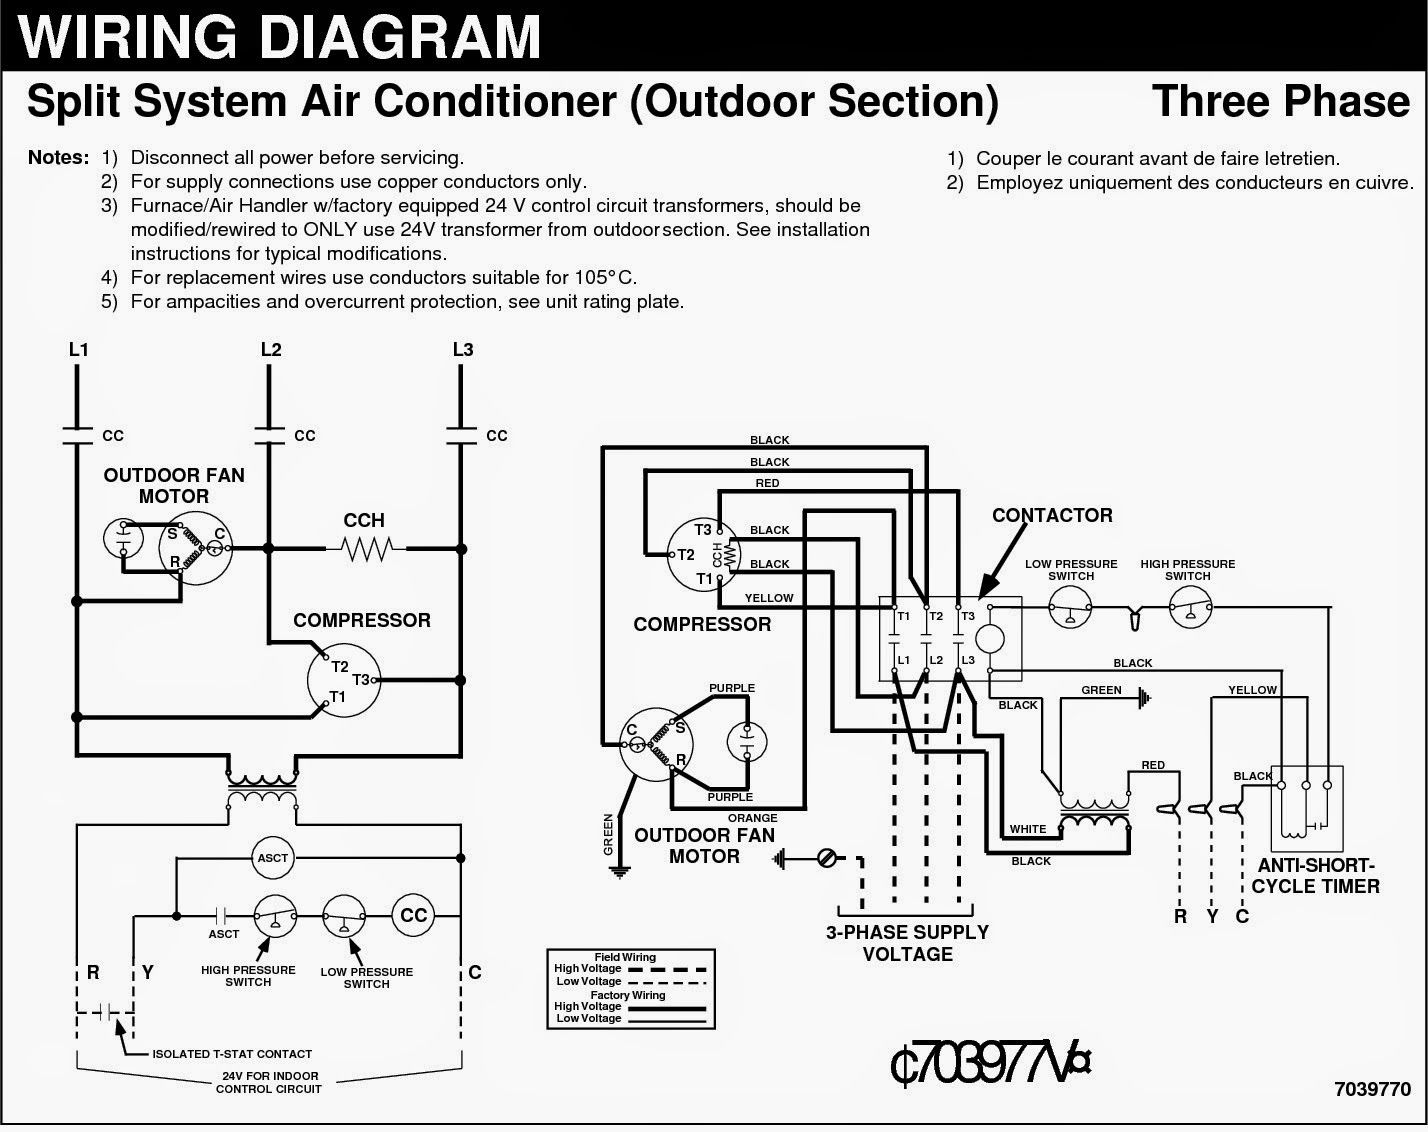 3 Phase Wiring Diagram For House | wiring diagram ... on